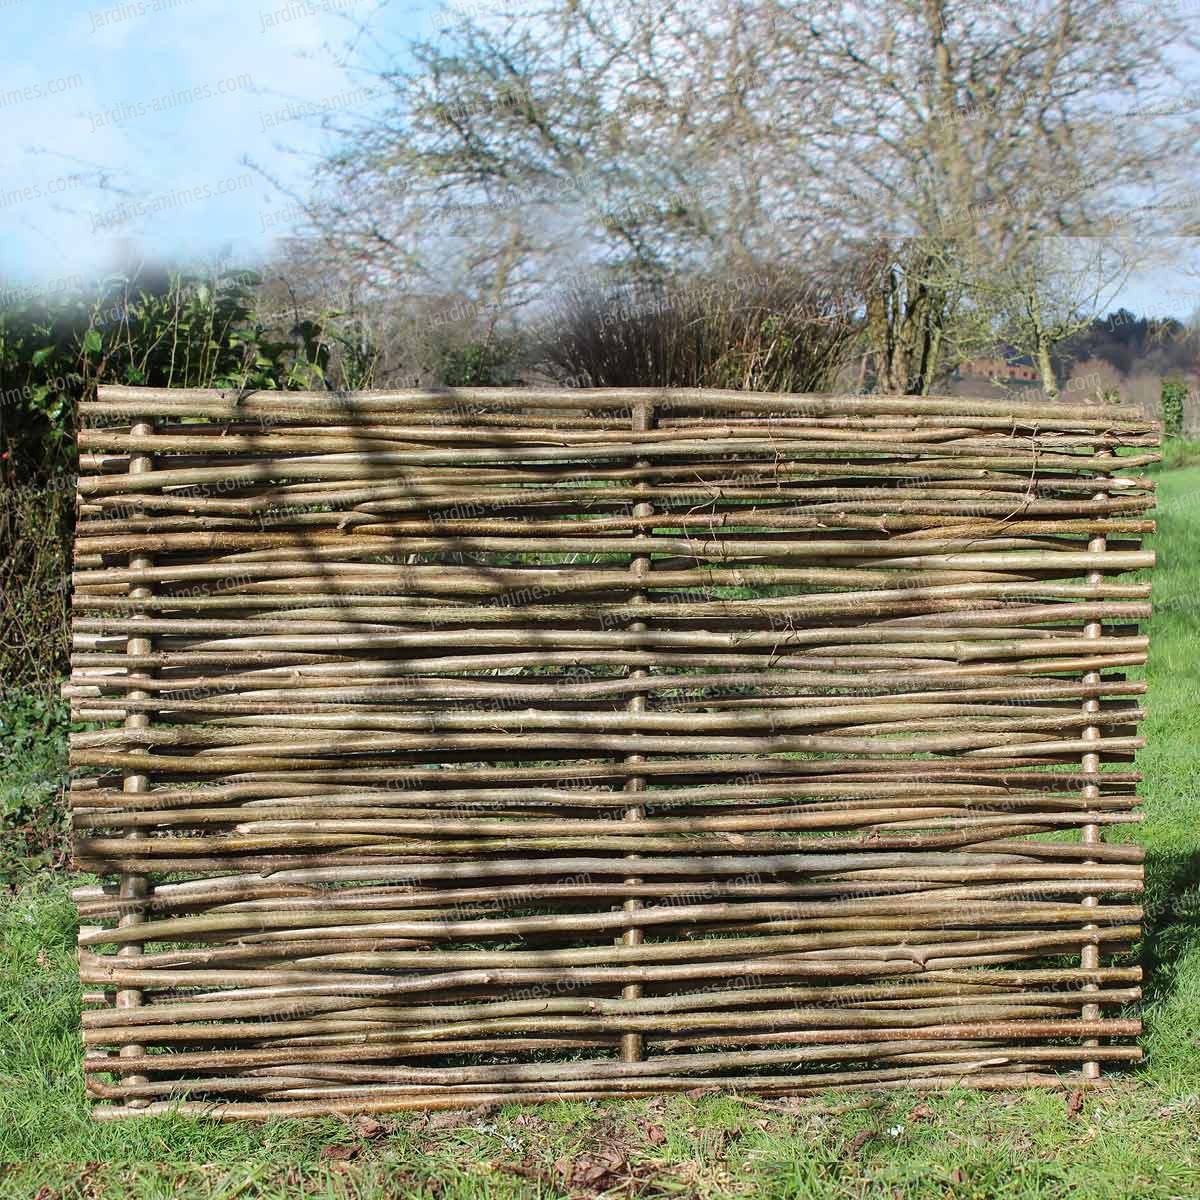 Barri re noisetier tressage horizontal cloture et occultation - Barriere en bois ...